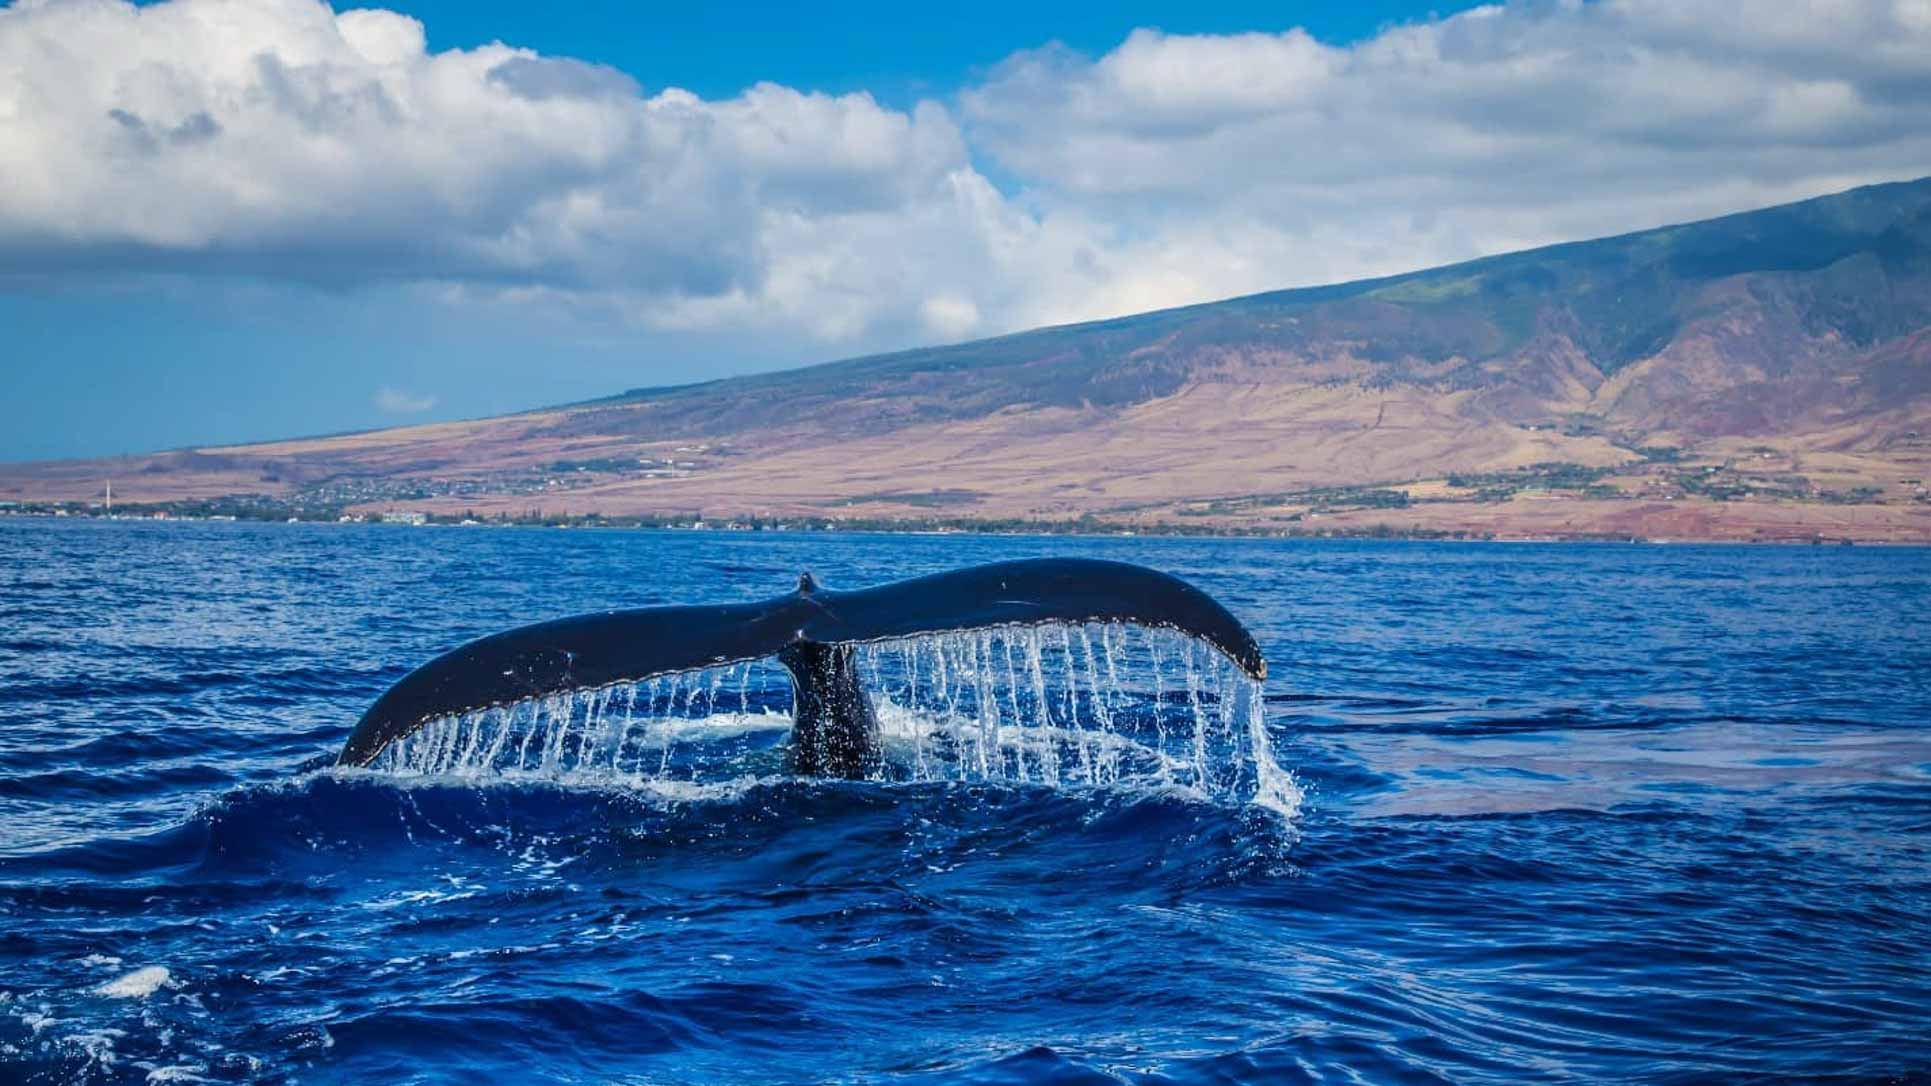 Whale Watching Season at Its Best in Cabo